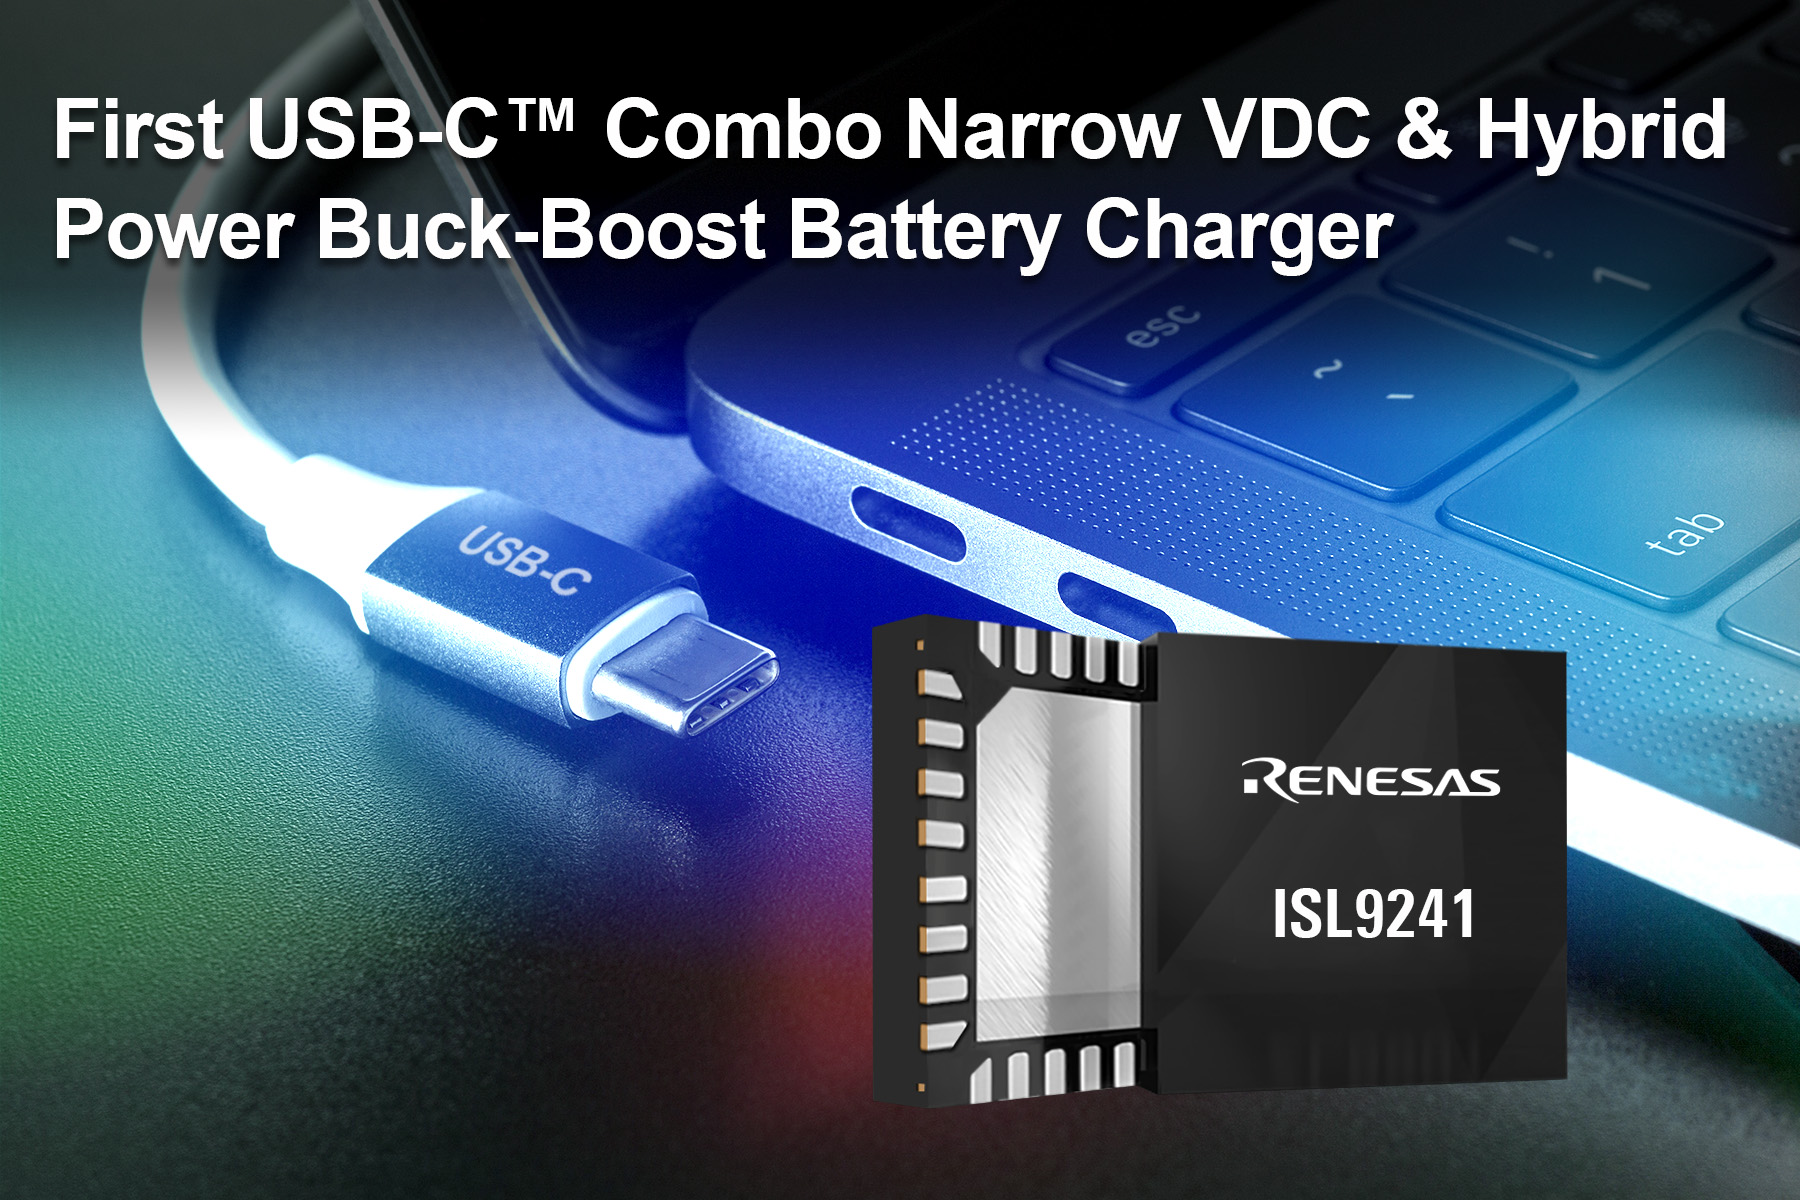 , Renesas Electronics Announces Industry's First USB-C™ Combo Buck-Boost Battery Charger for Mobile Computing Systems